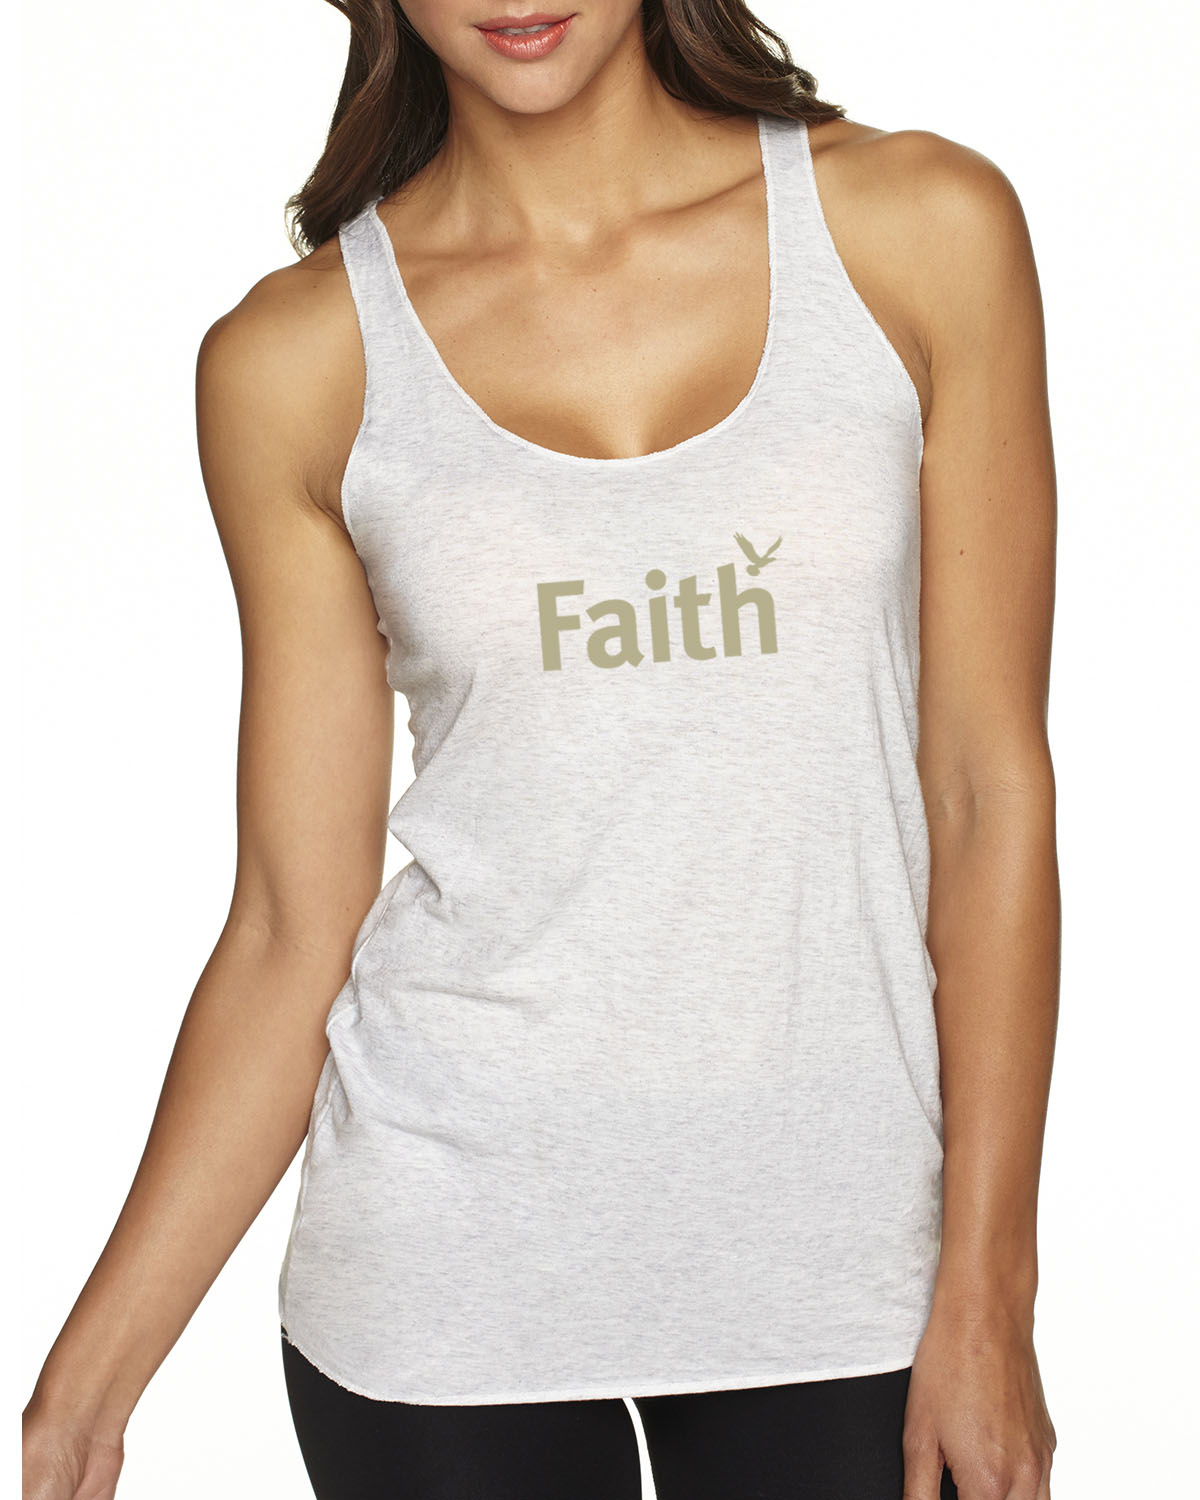 Women's Tri-blend Racer-back tank top (Heather White)